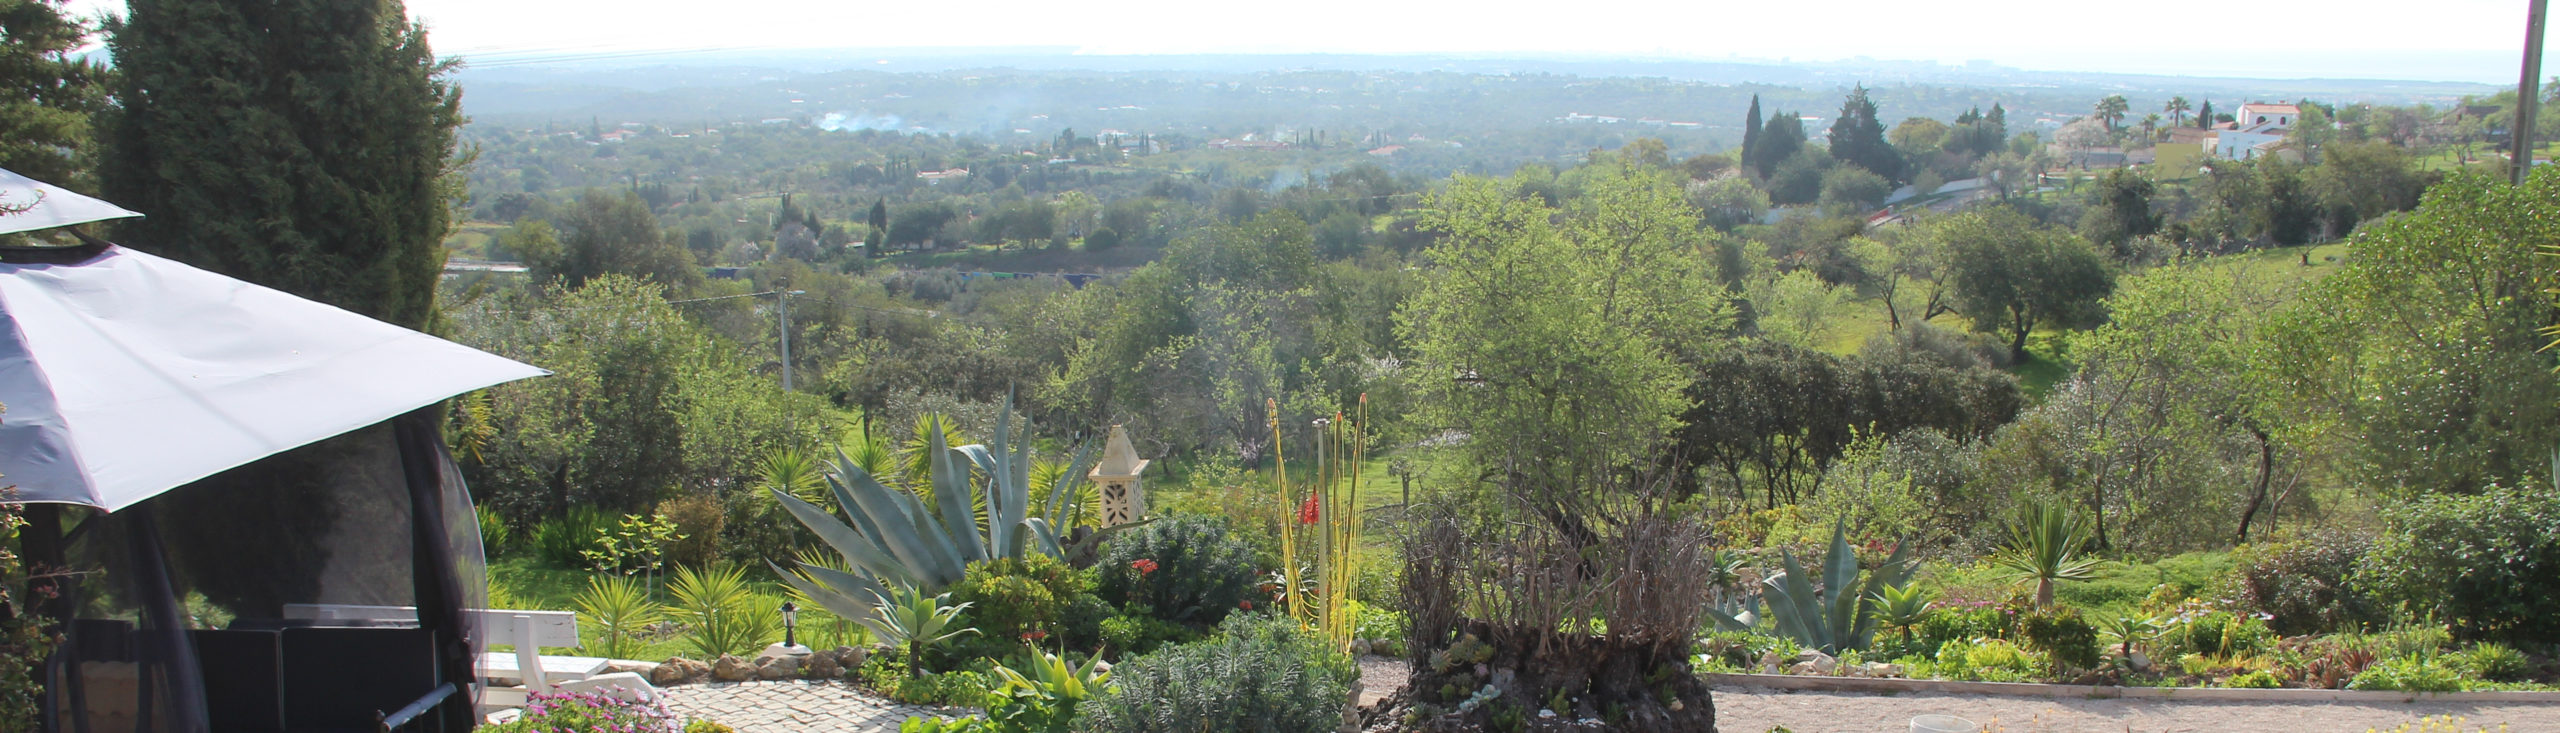 Algarve Winter Gardening